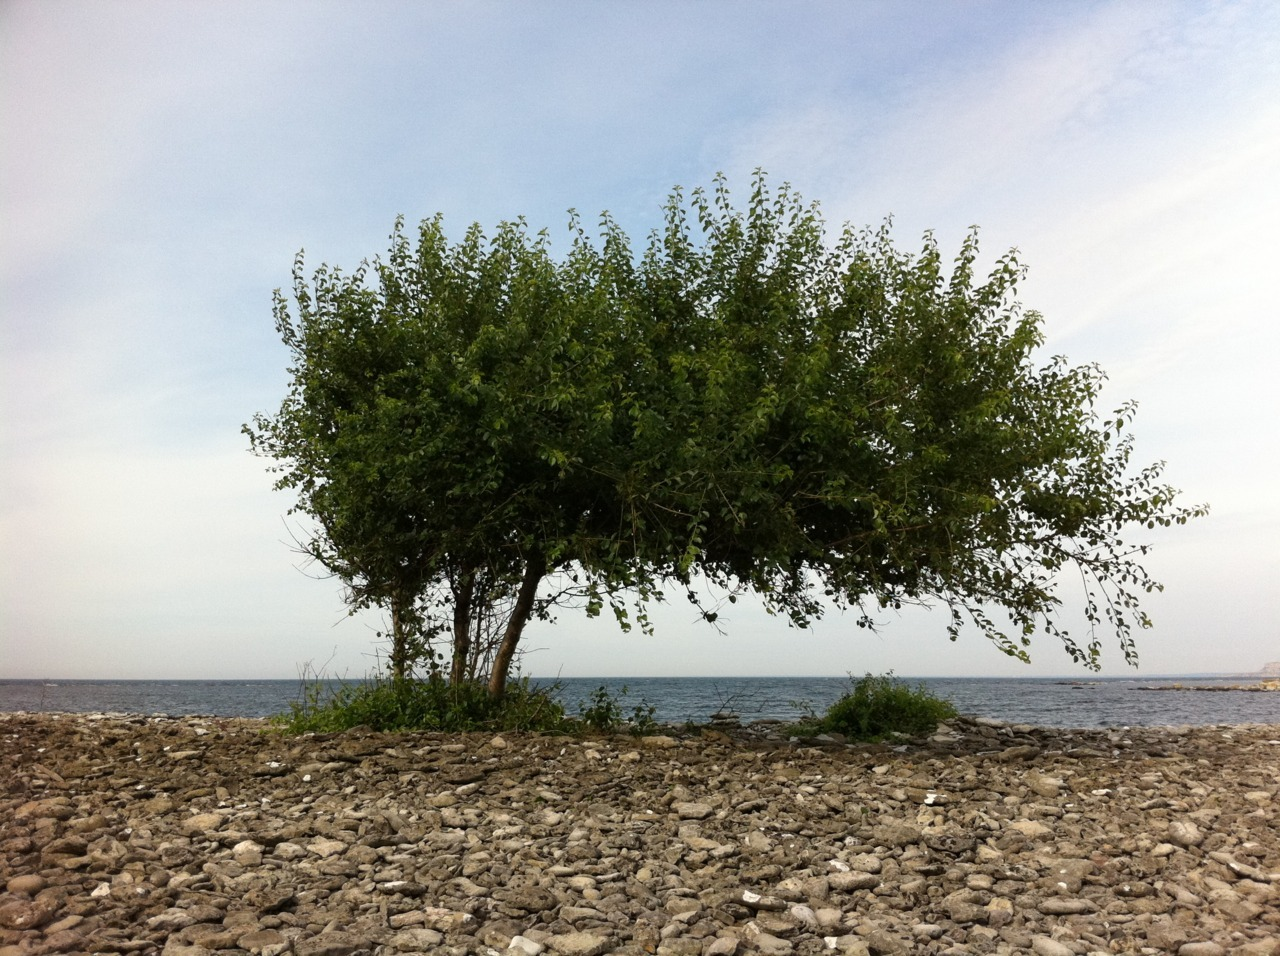 Beach tree at Stora Karlsö.